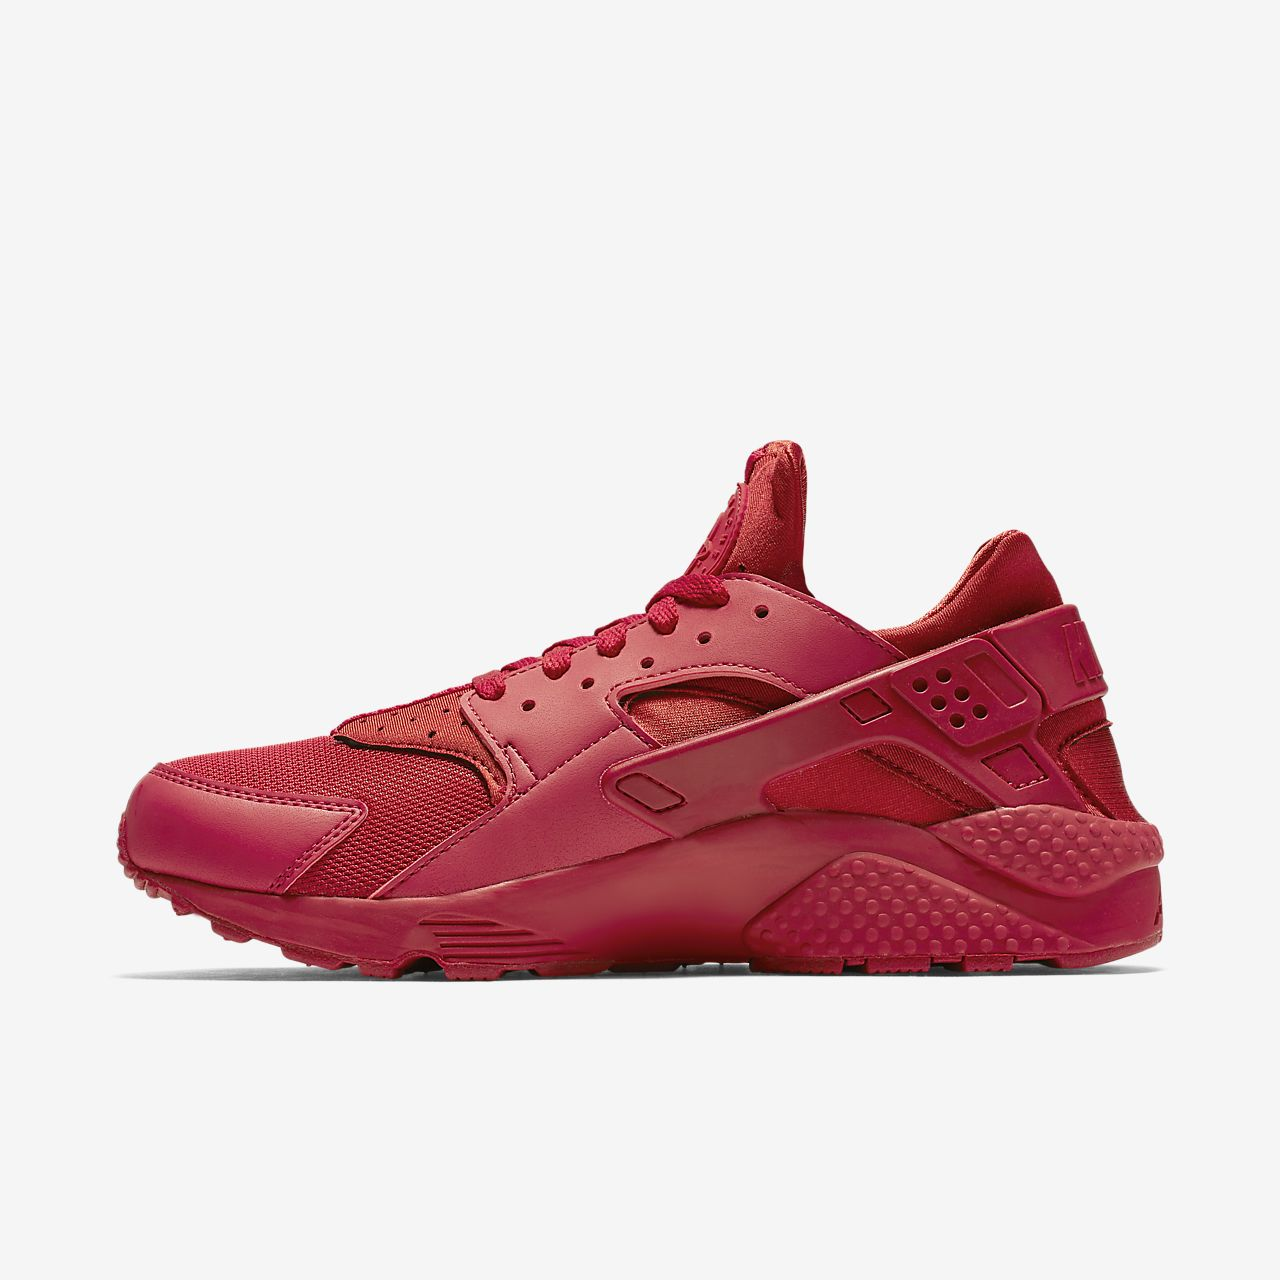 8141f37d10090 Nike Air Huarache Men s Shoe. Nike.com